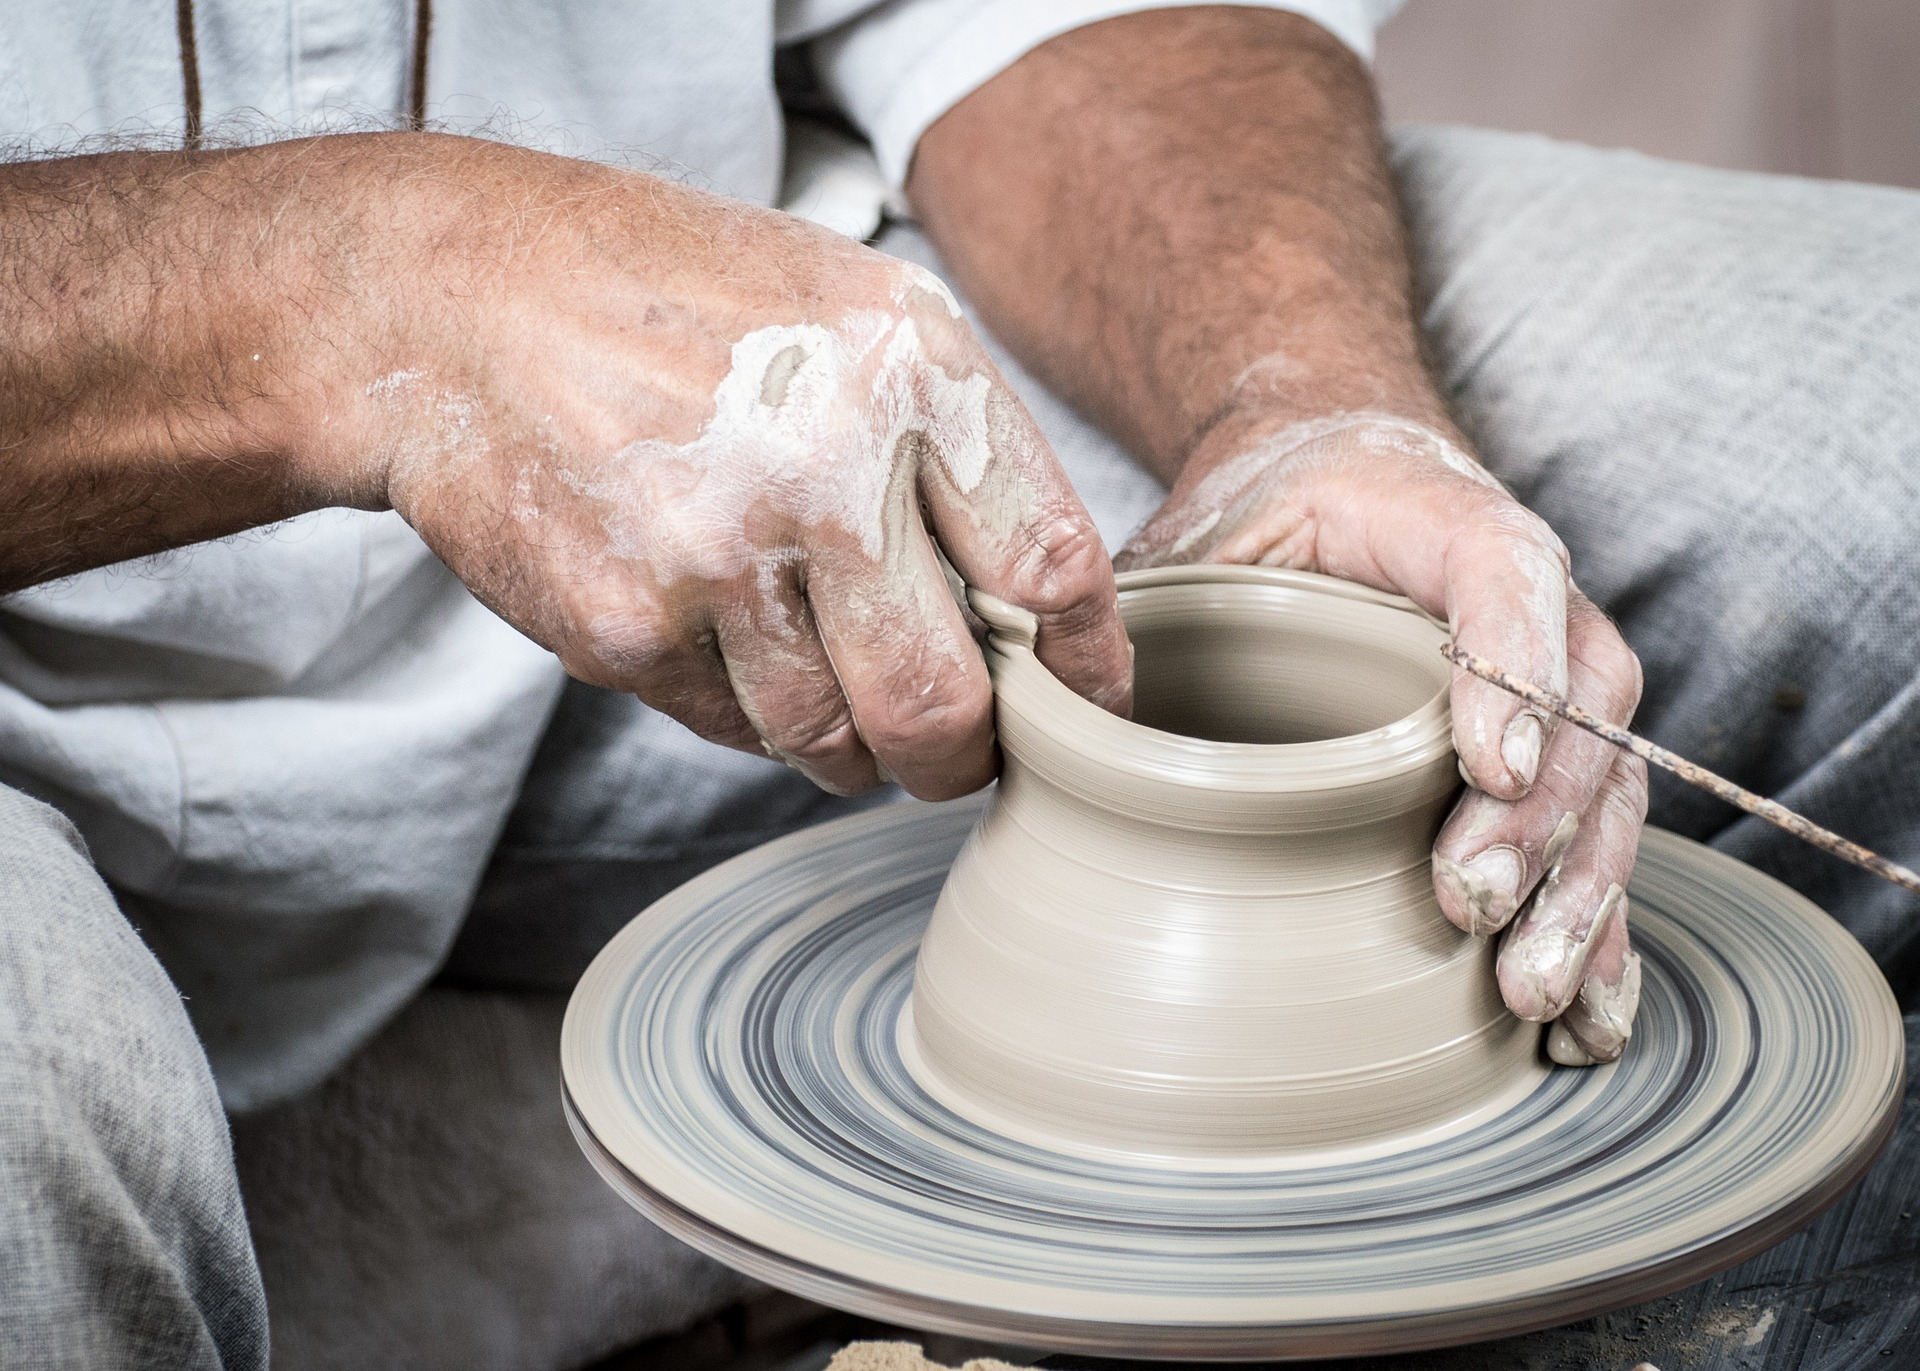 pottery-center-what-are-the-most-unique-christmas-gift-ideas-for-her-in-2019-studio-emoi